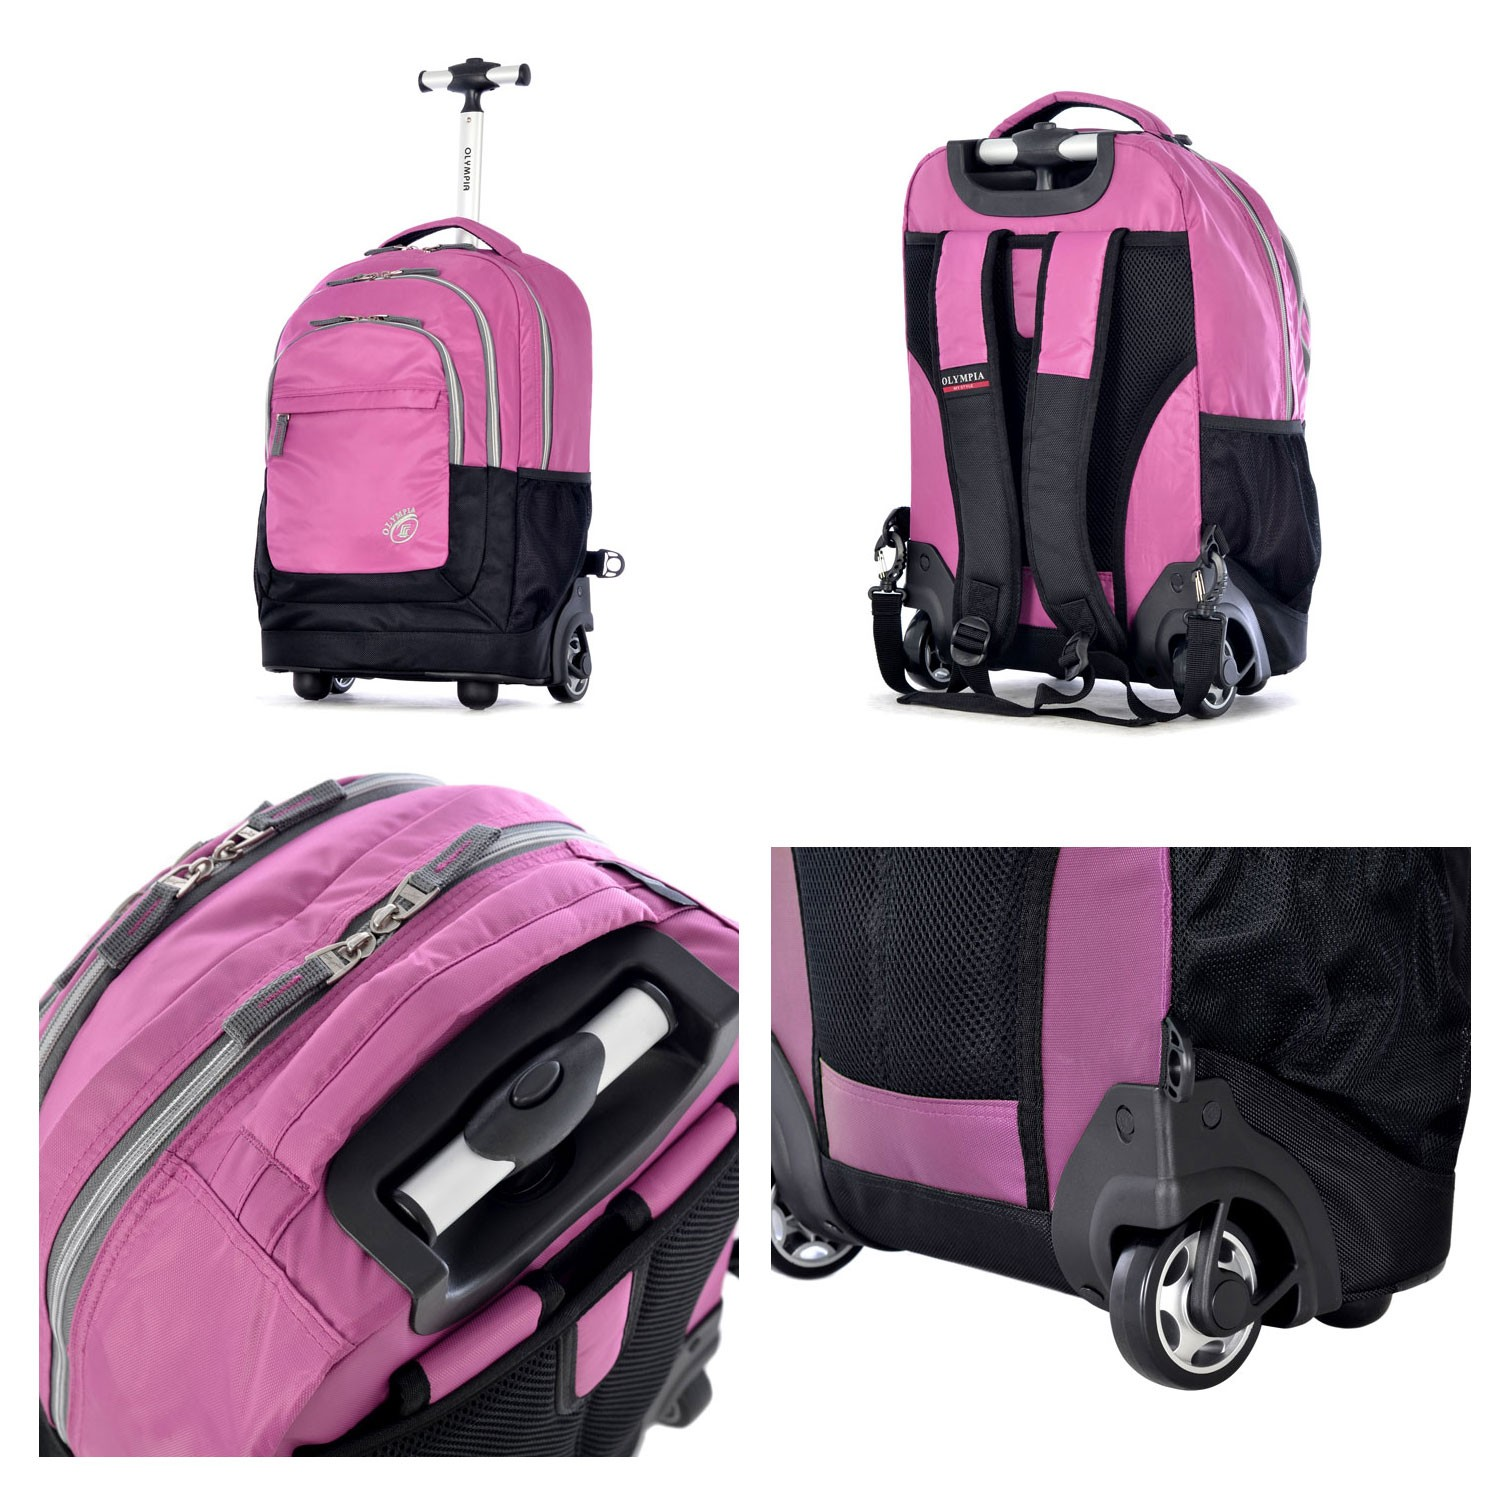 Olympia Rolling Backpack ExbKrhA1